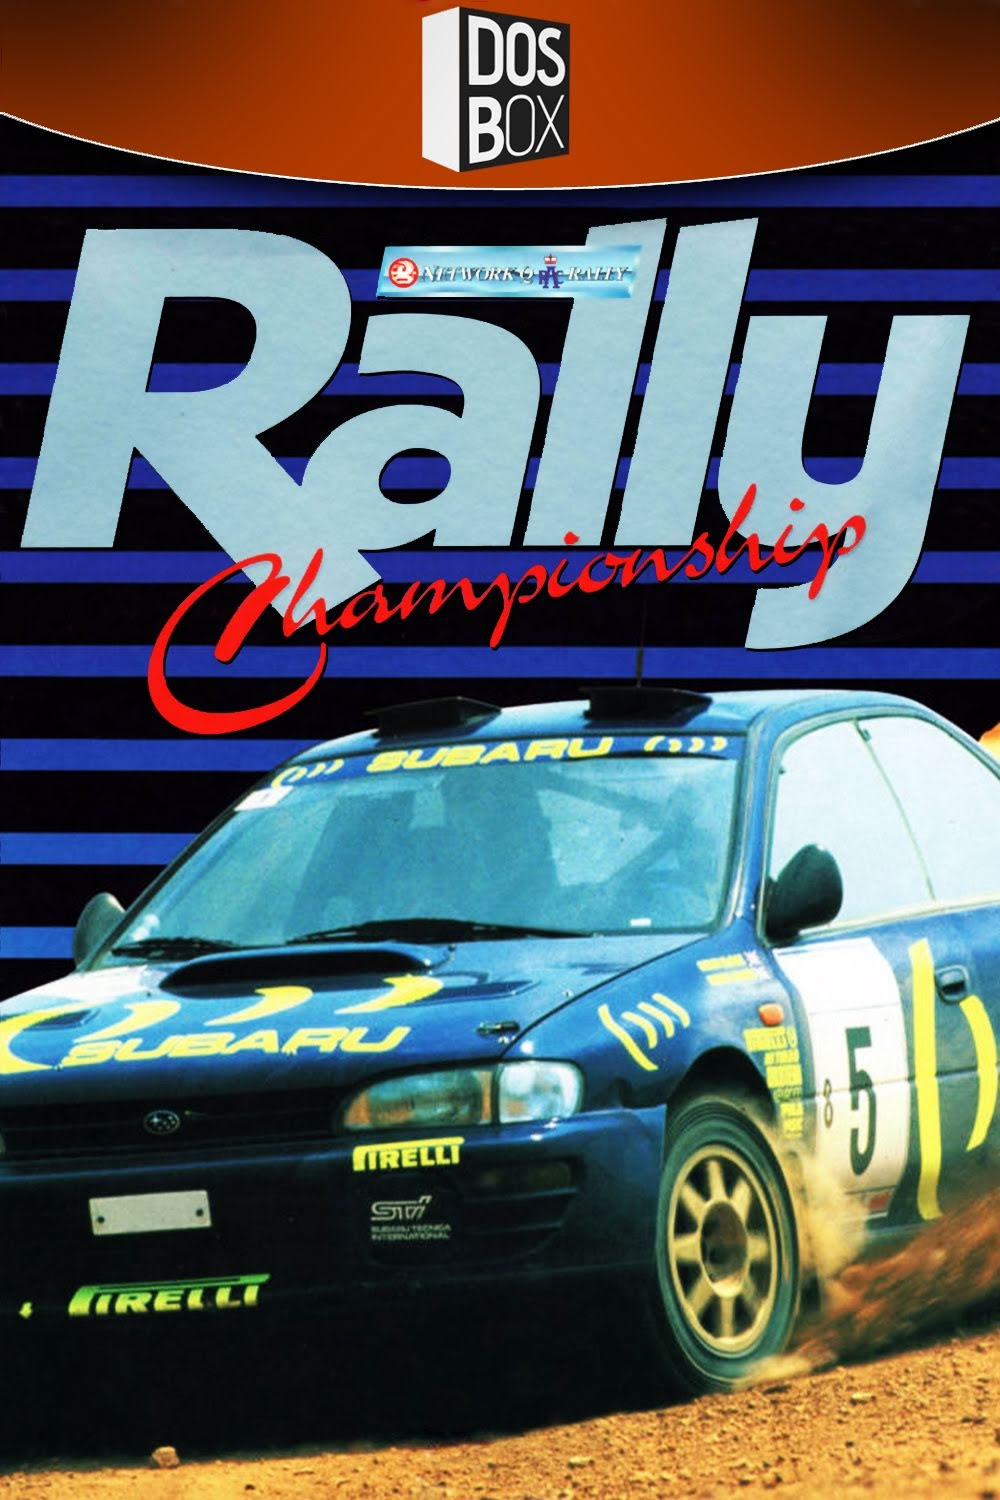 https://collectionchamber.blogspot.com/p/network-q-rac-rally-championship.html